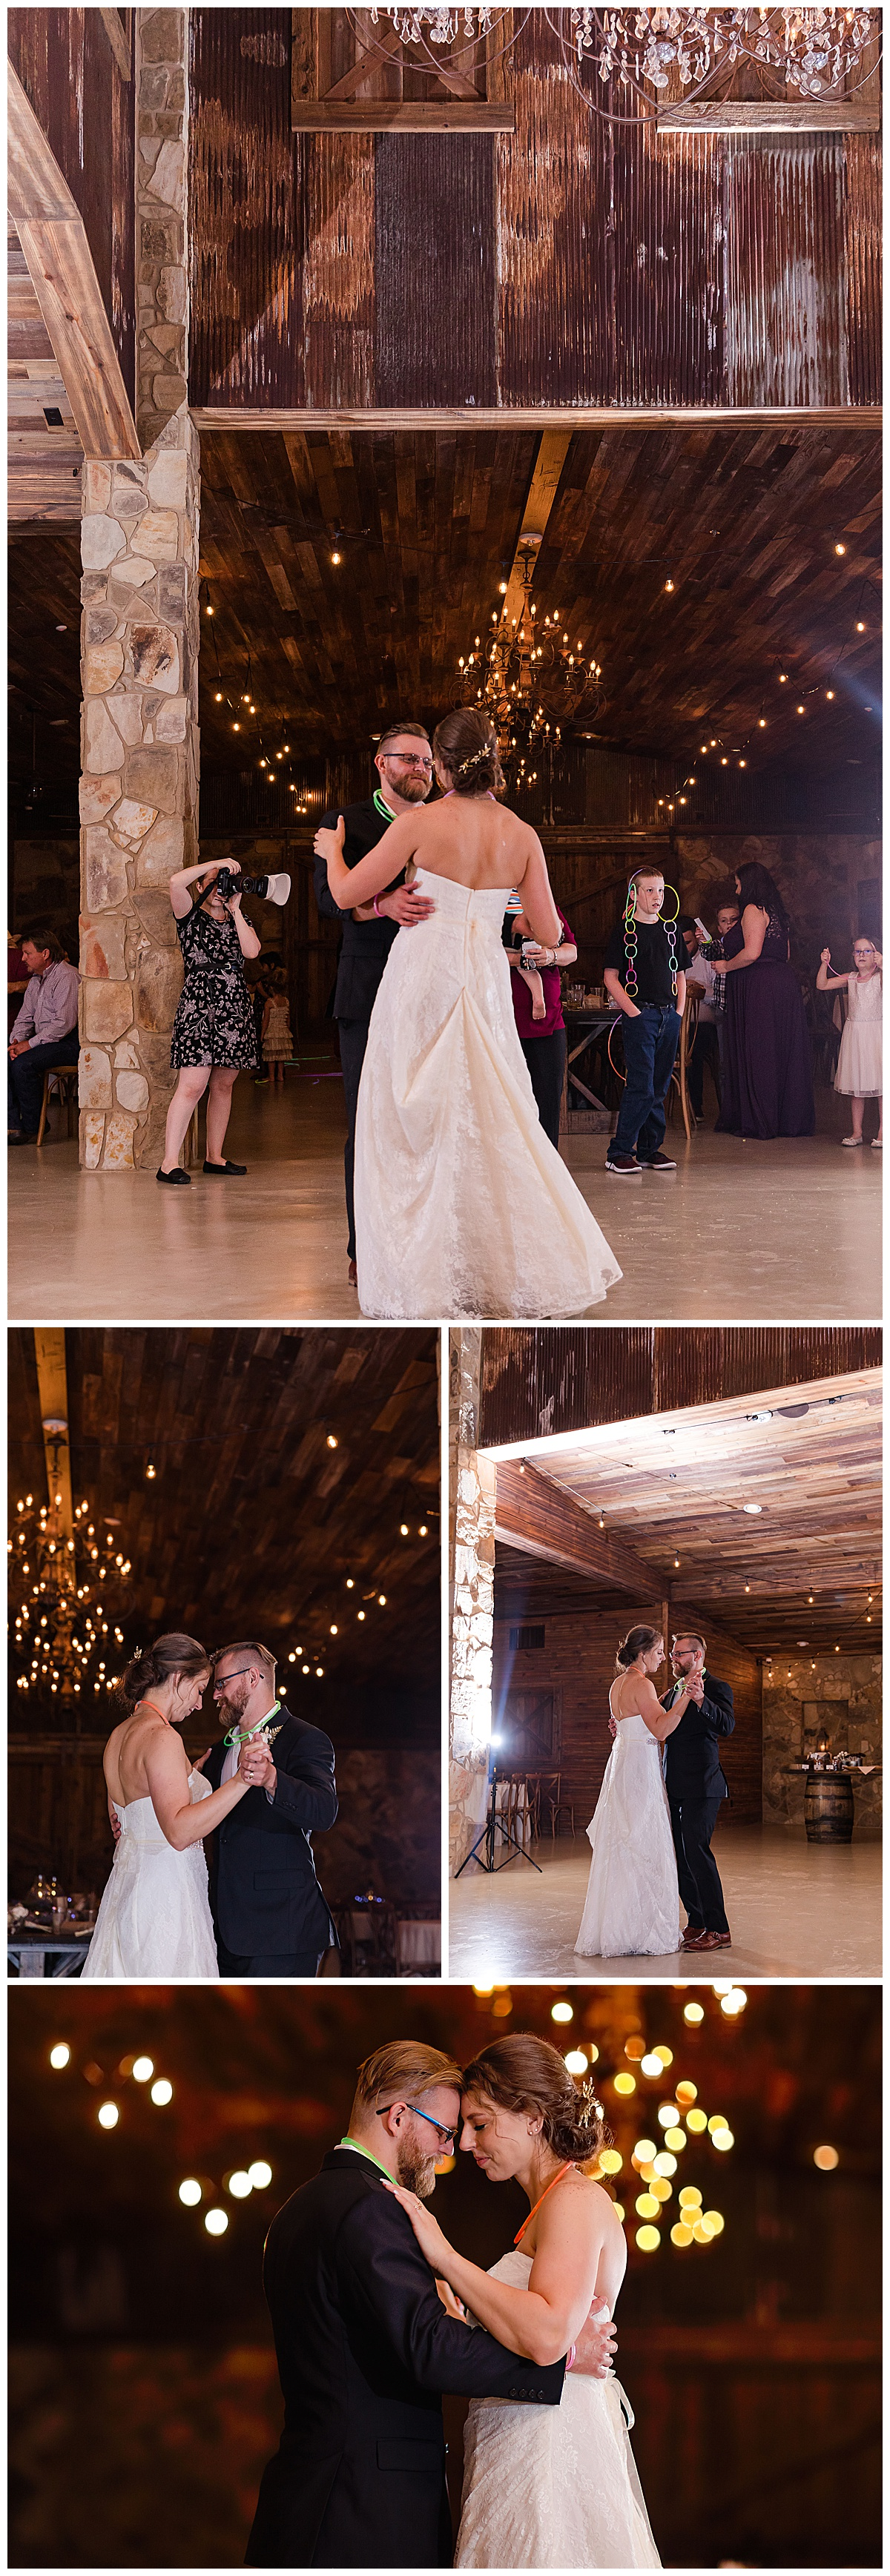 Texas-Magnolia-Bells-Rustic-Wedding-Carly-Barton-Photography_0086.jpg